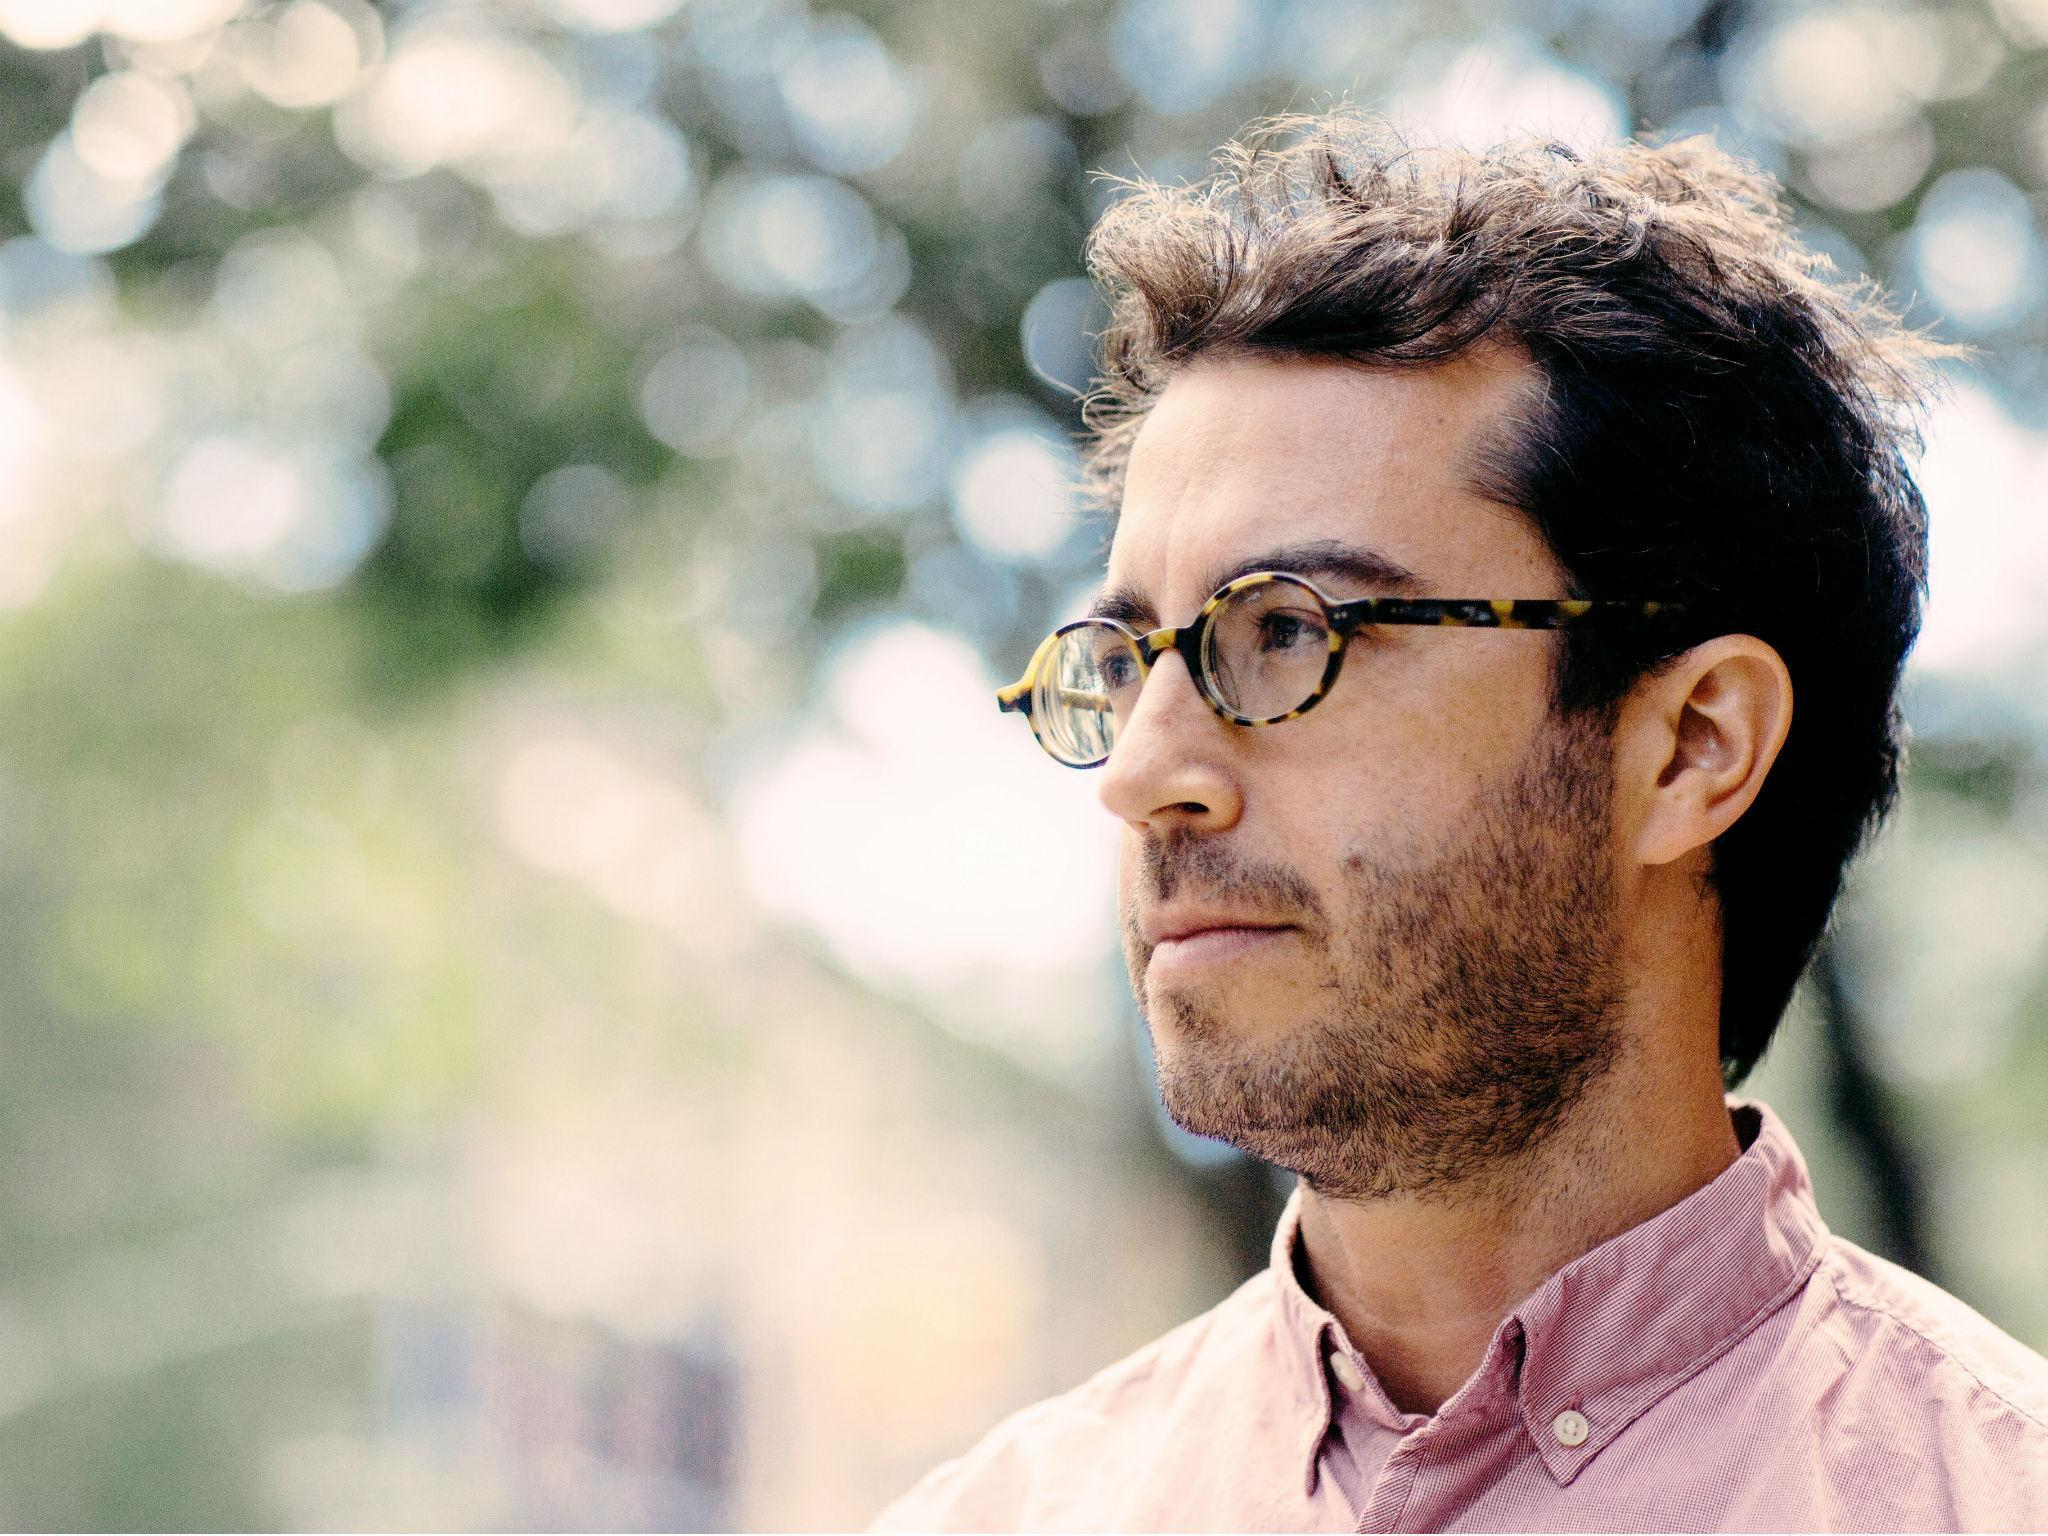 jonathan safran foer essay Everything is illuminated, by jonathan safran foer, was published in 2002 and is still on many bestseller lists foer was born in washington dc in 1977.